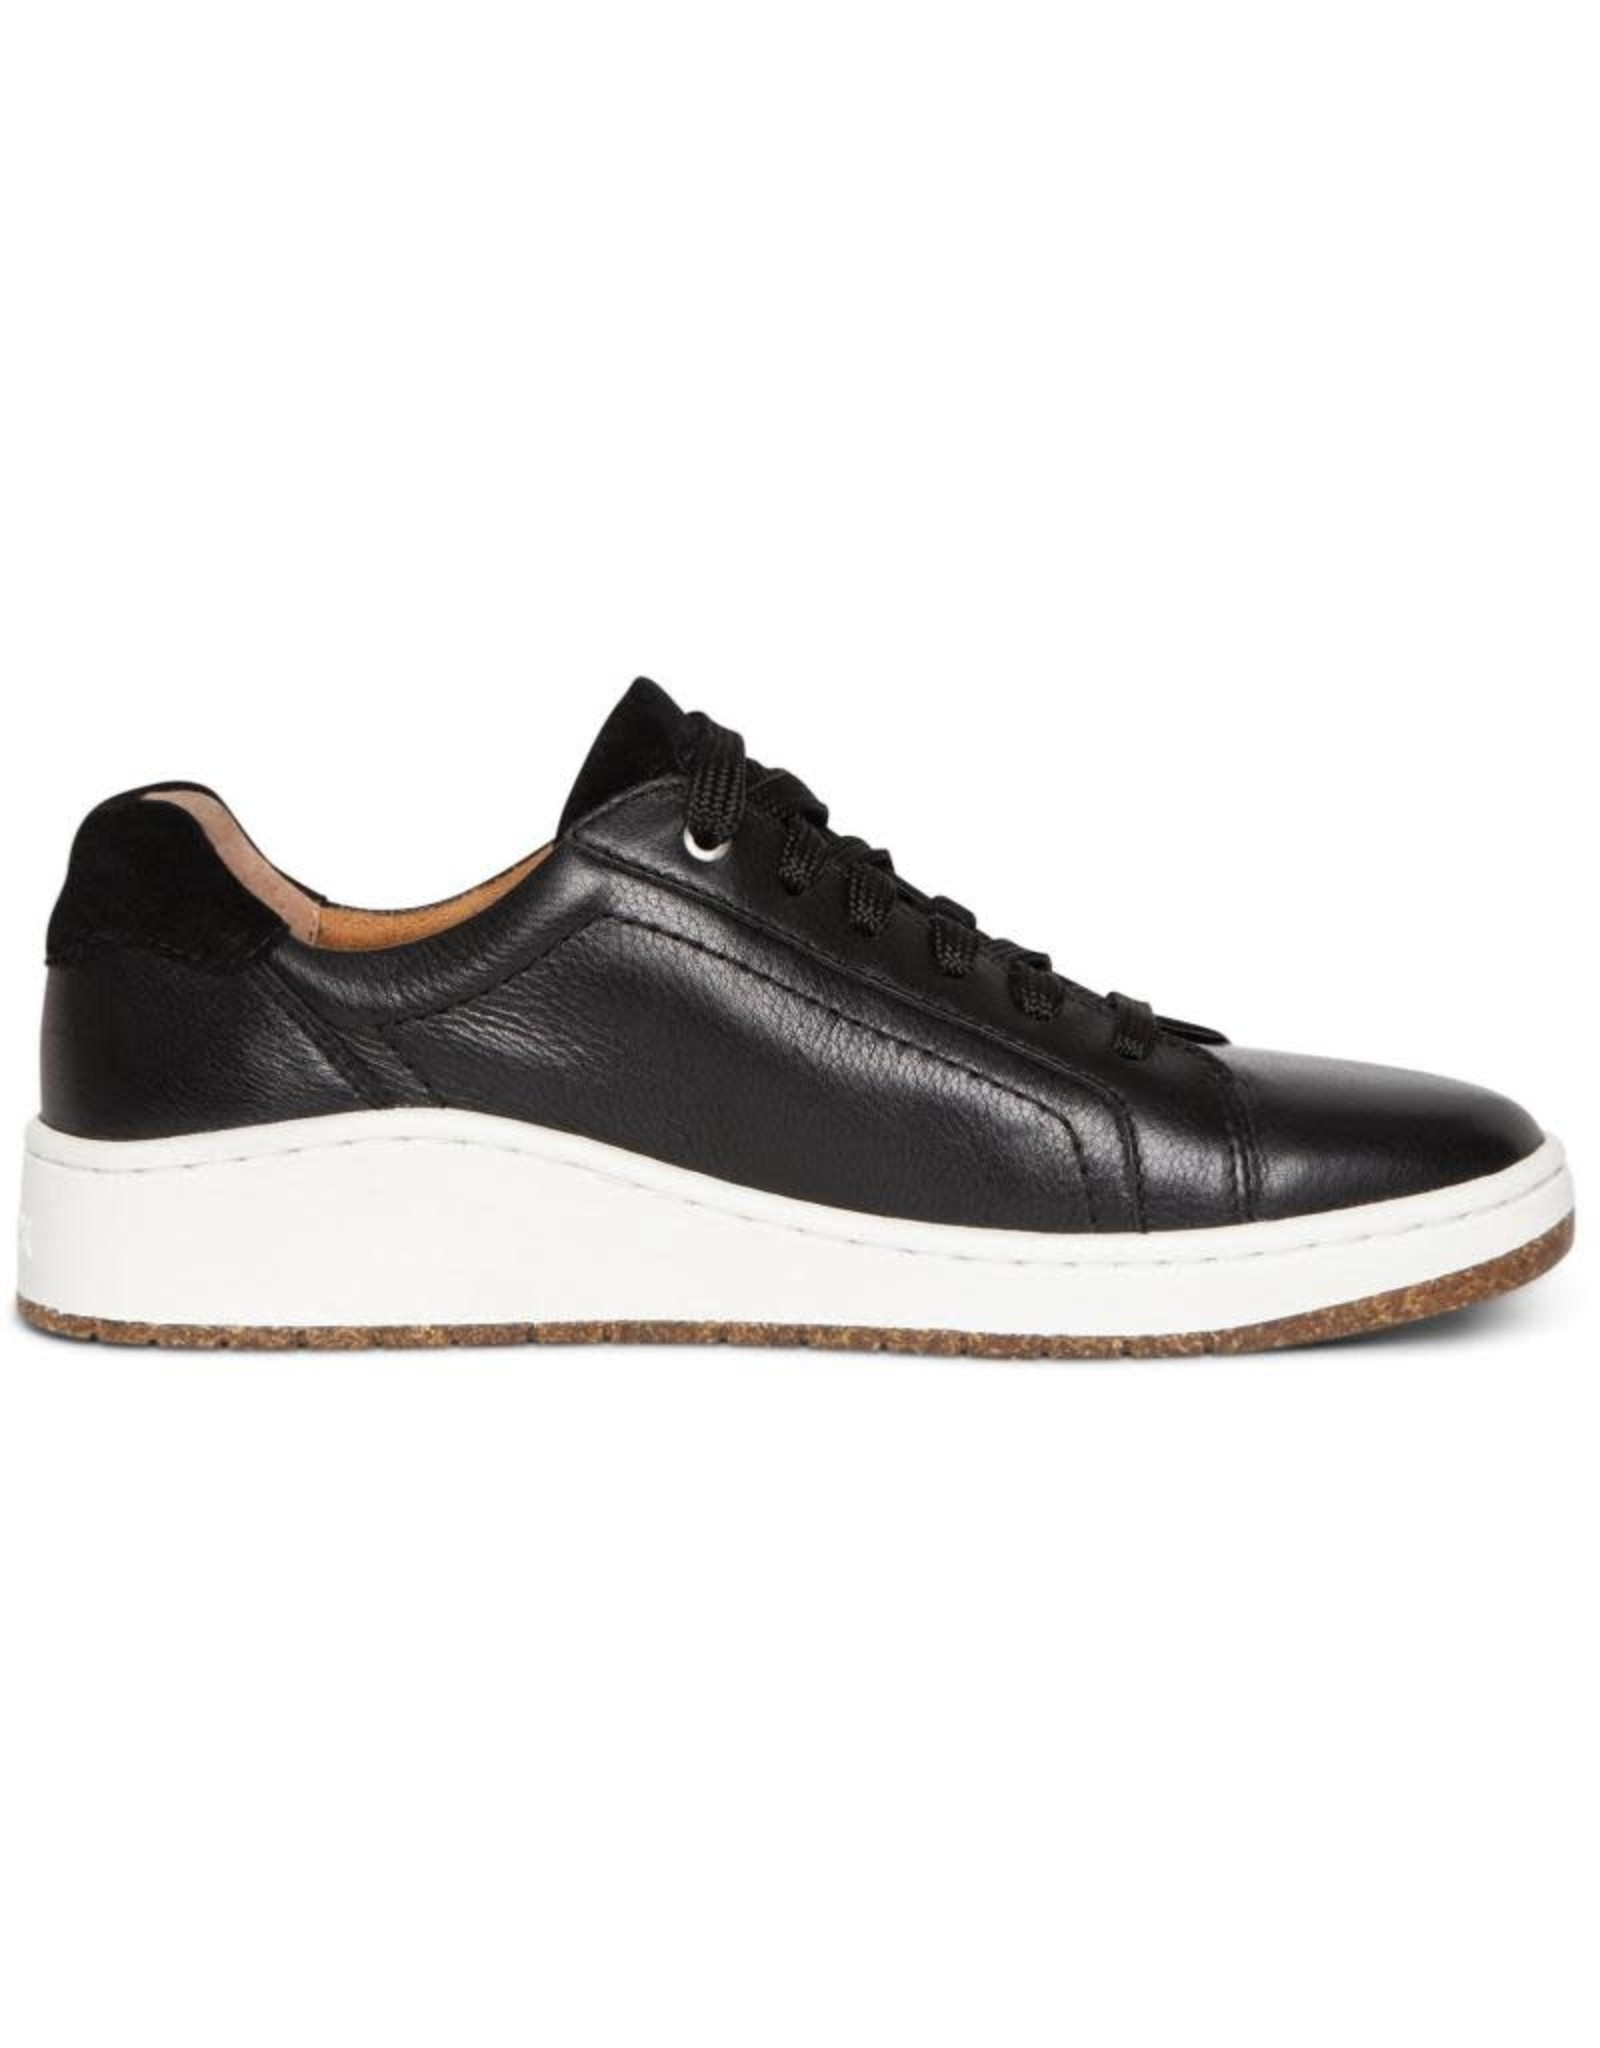 Aetrex Blake Lace Up Sneaker